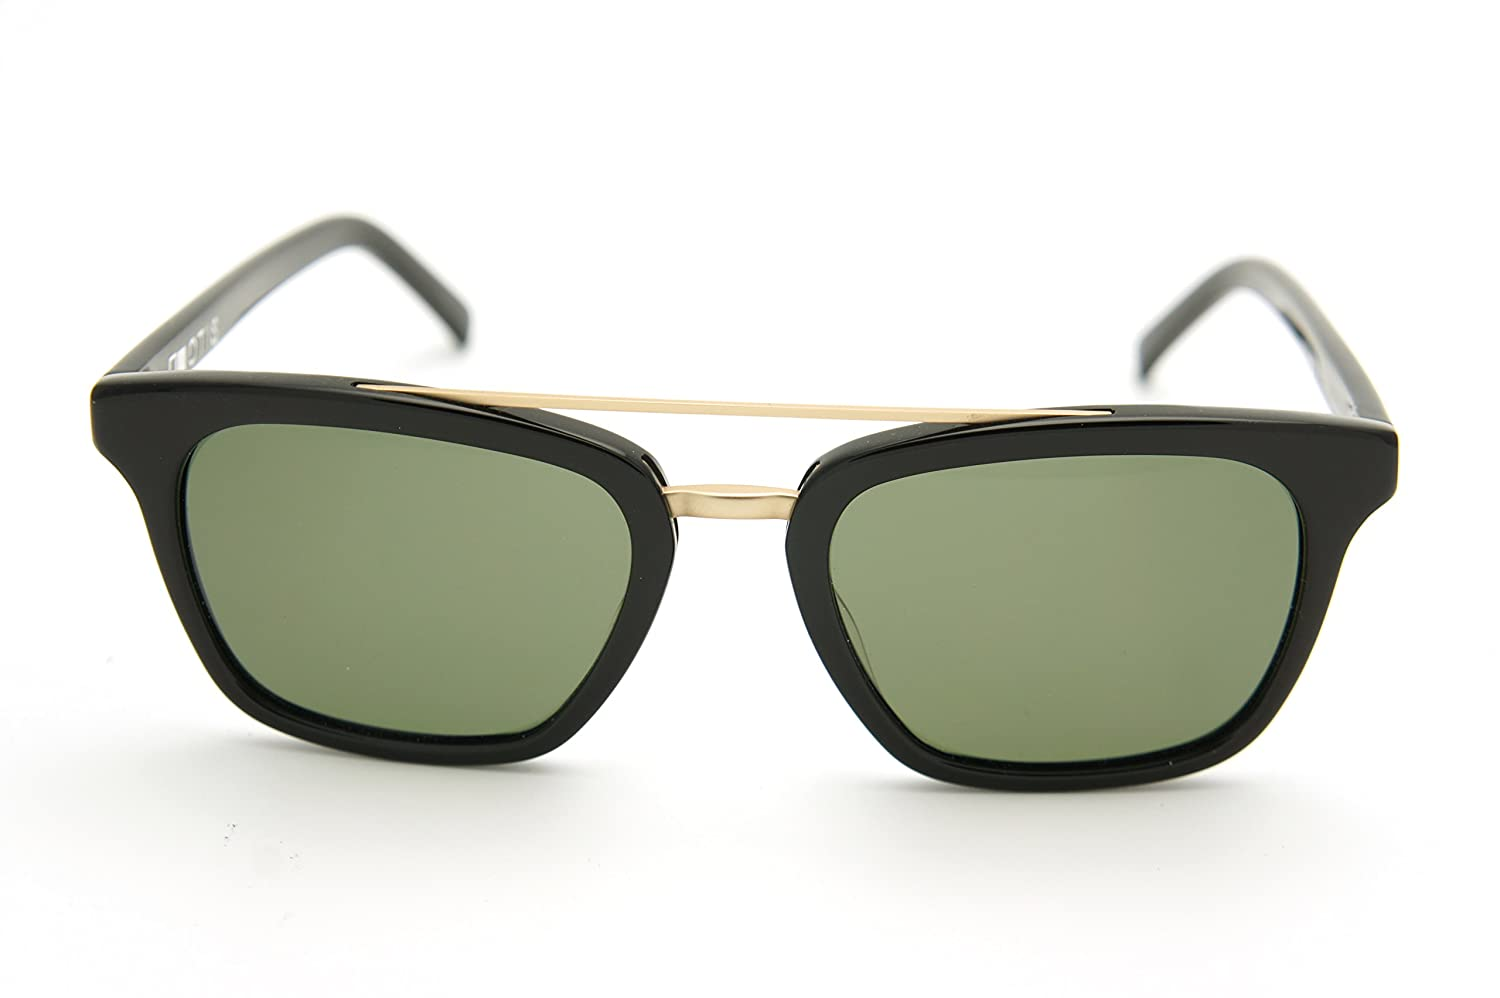 b3b11f2bd40 Amazon.com  Otis Non Fiction Polarized Sunglasses (shiny black green  polarized